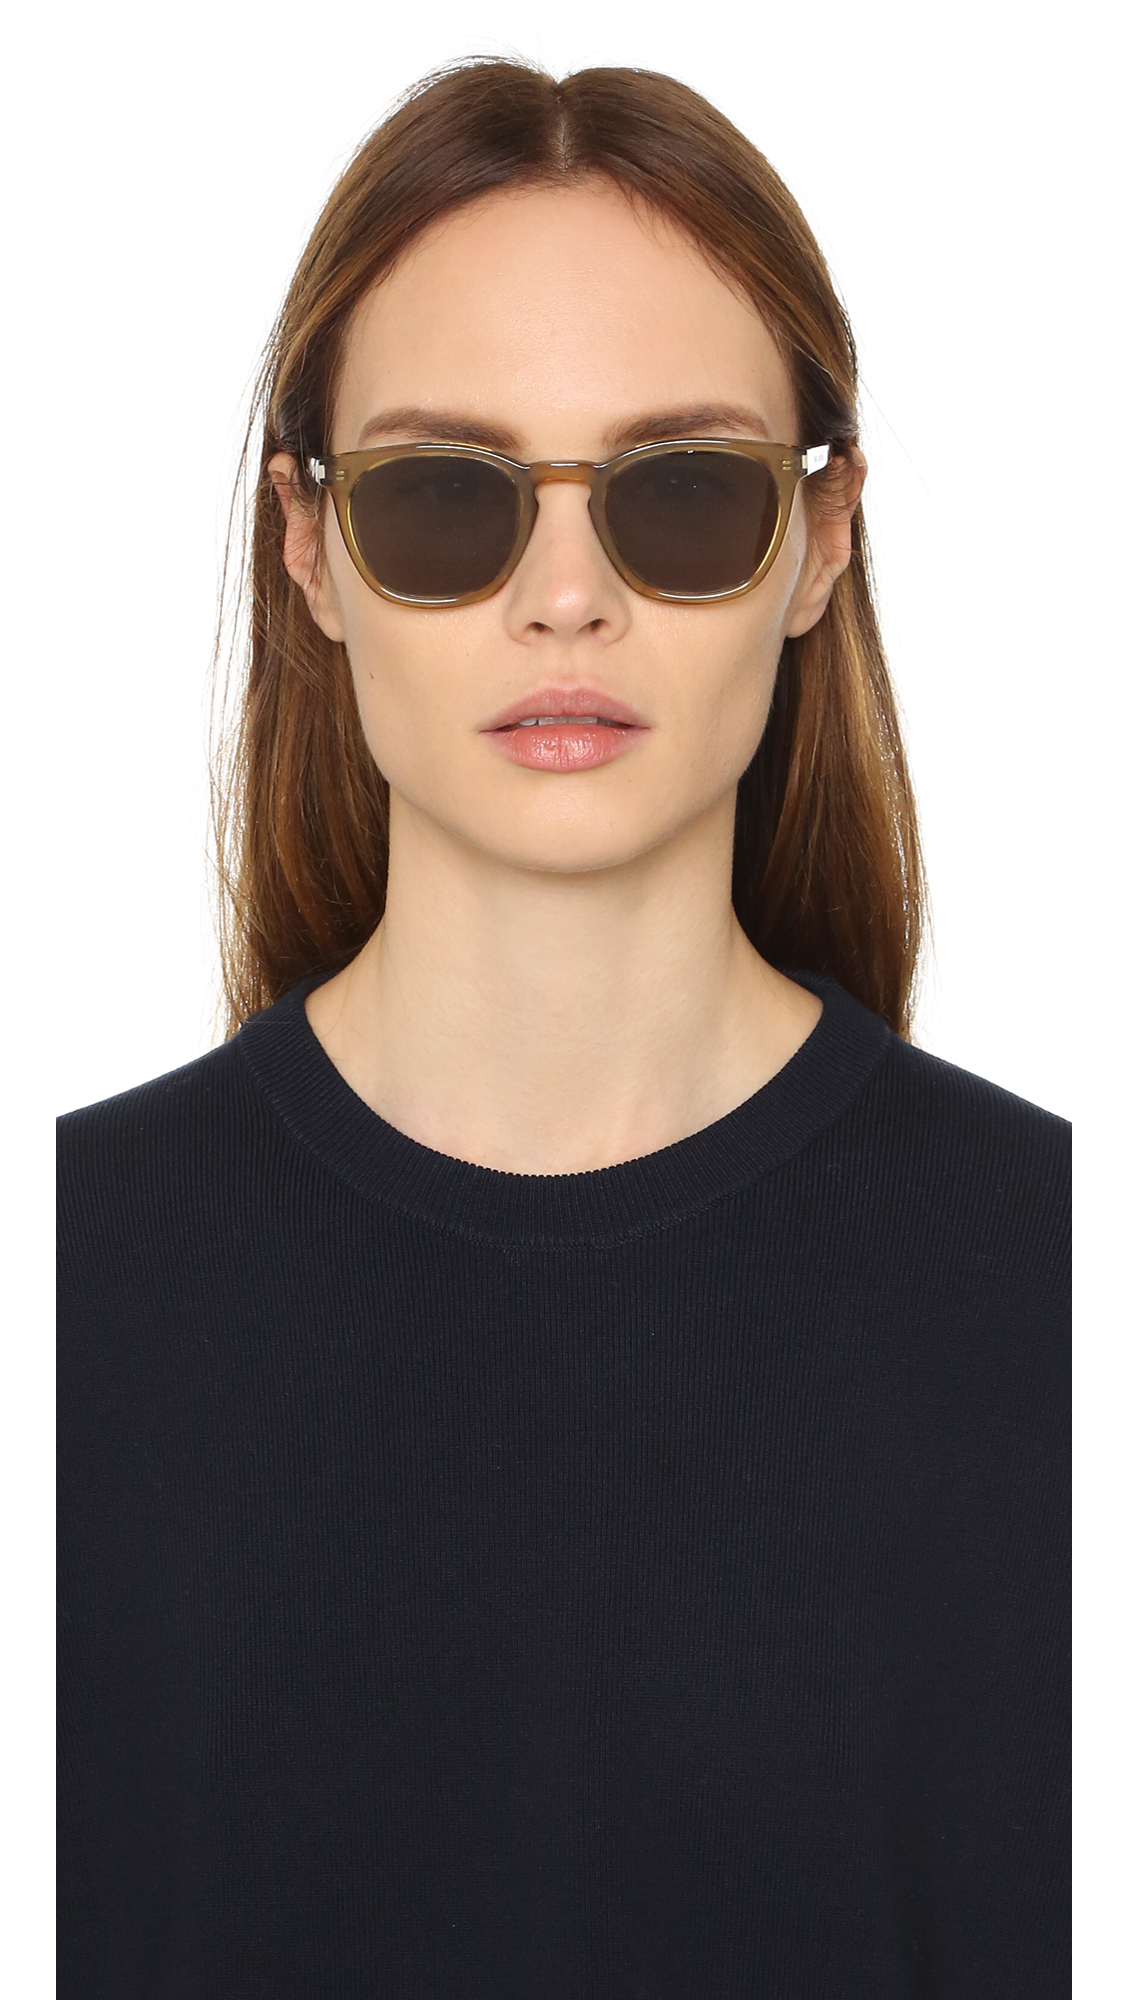 5aa2eac3461 Lyst - Saint Laurent Sl 28 Sunglasses in Green